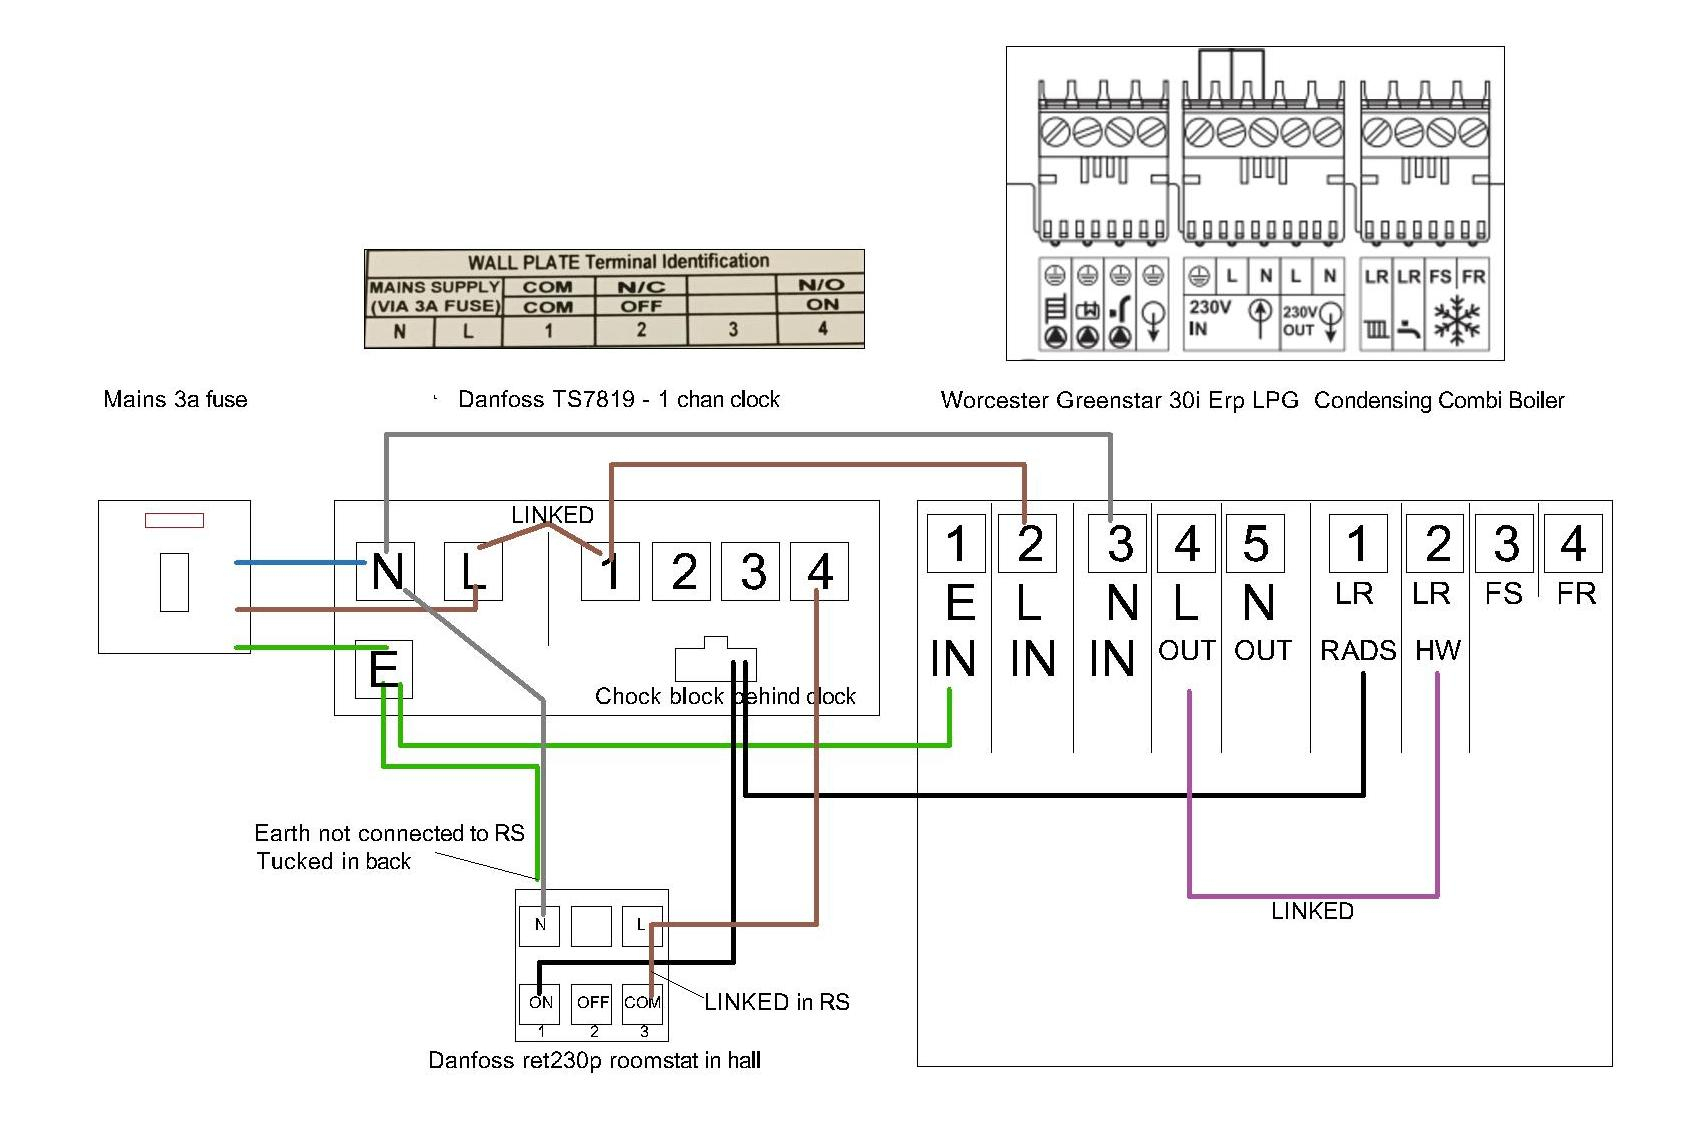 Nest Thermostat Wiring Diagram Combi Boiler | Domainadvice - Nest Thermostat Wiring Diagram Combi